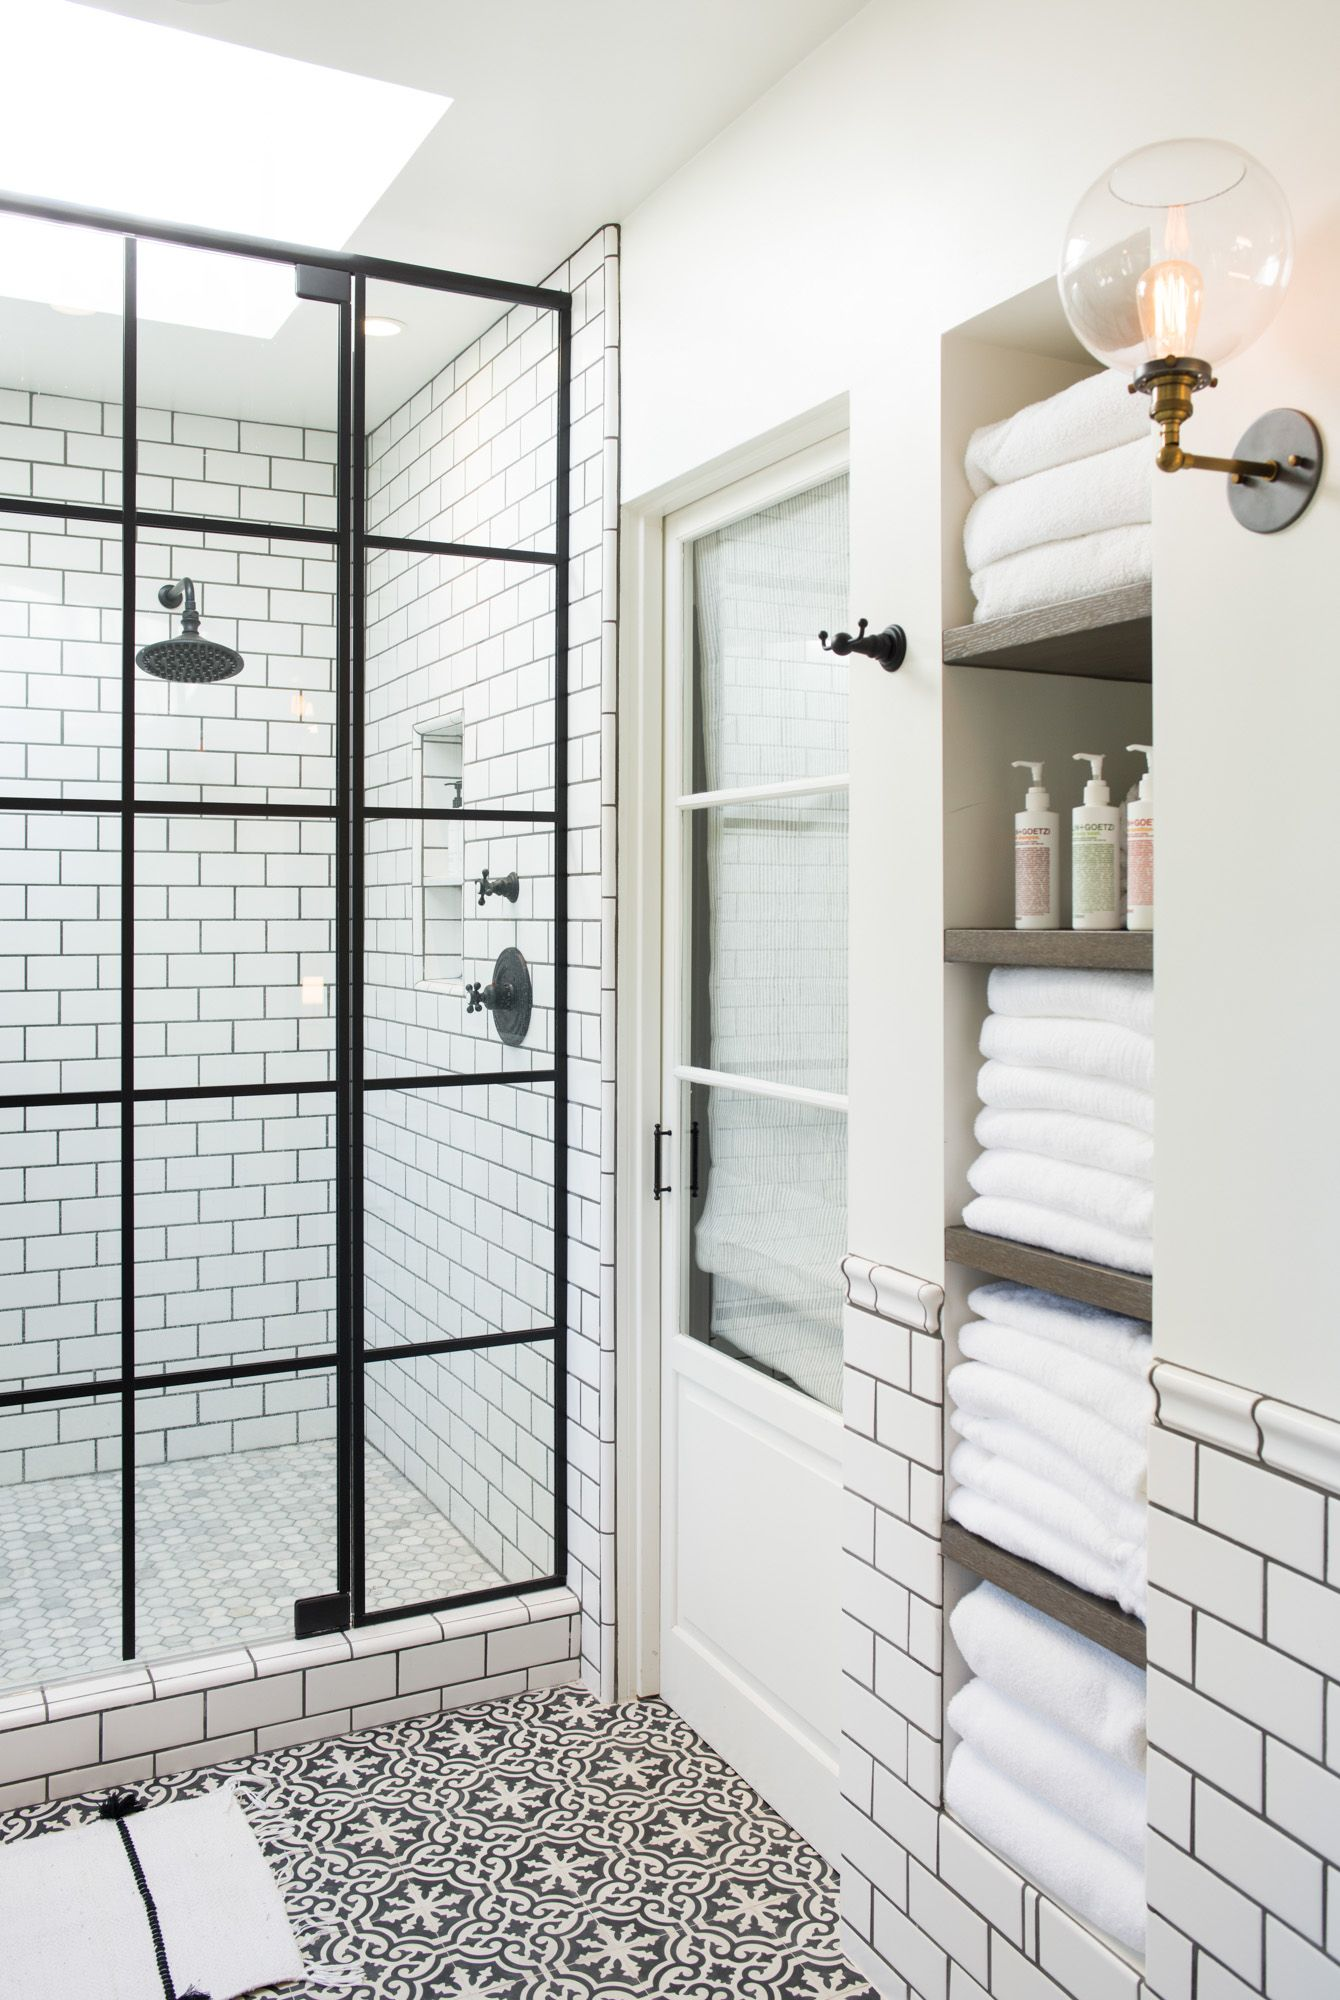 Pin by Beverly Parsons on Astor Place Bathroom | Pinterest | Shower ...